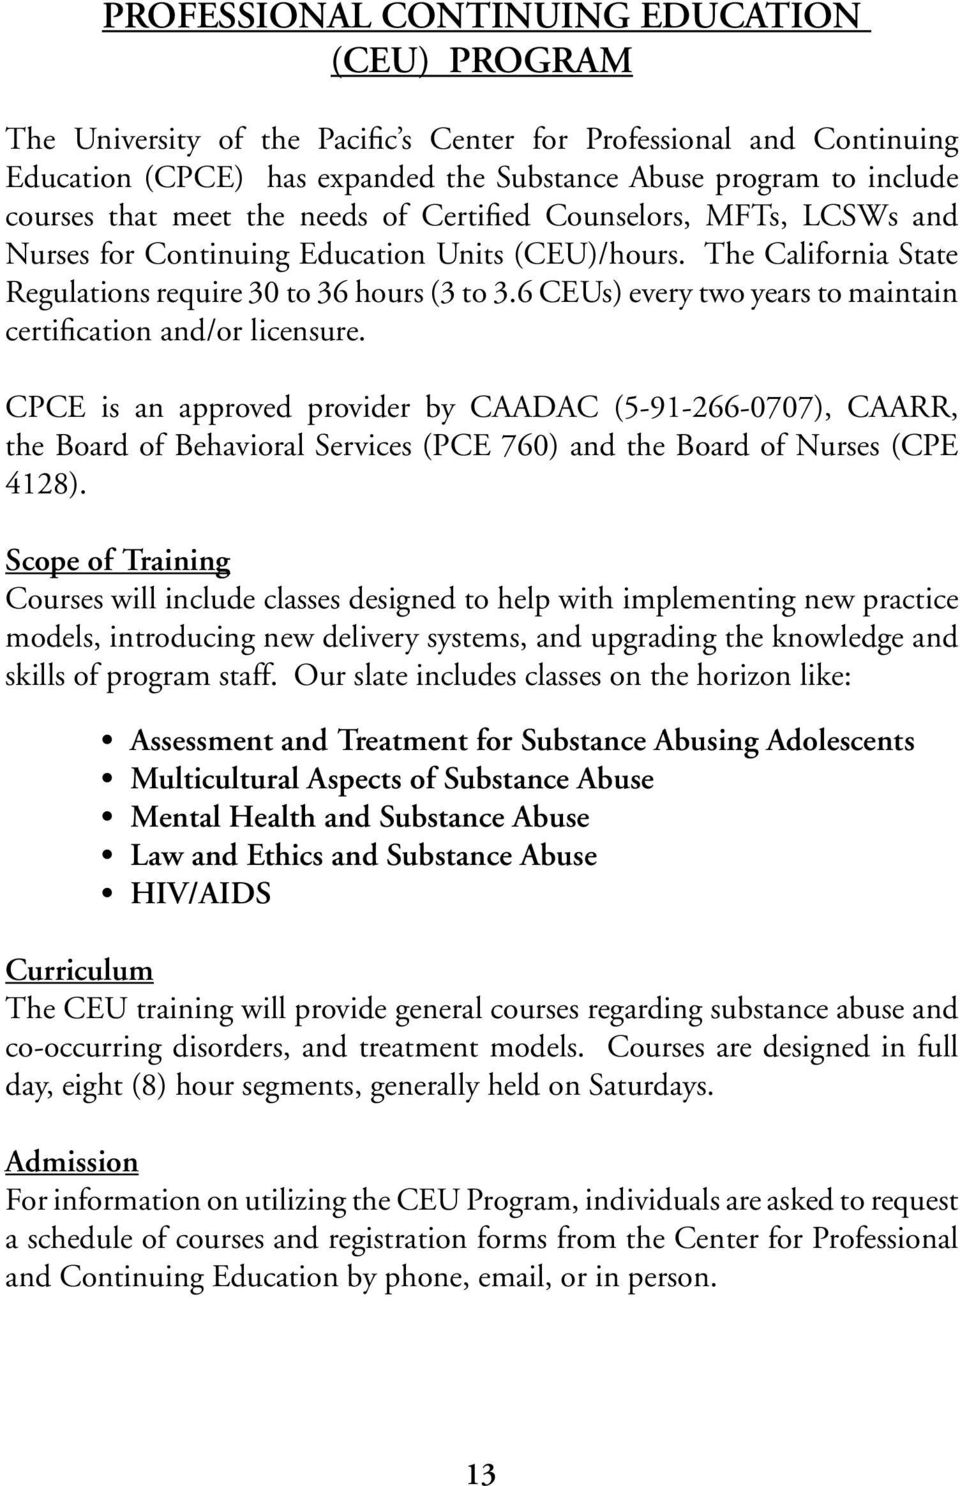 6 CEUs) every two years to maintain certification and/or licensure.